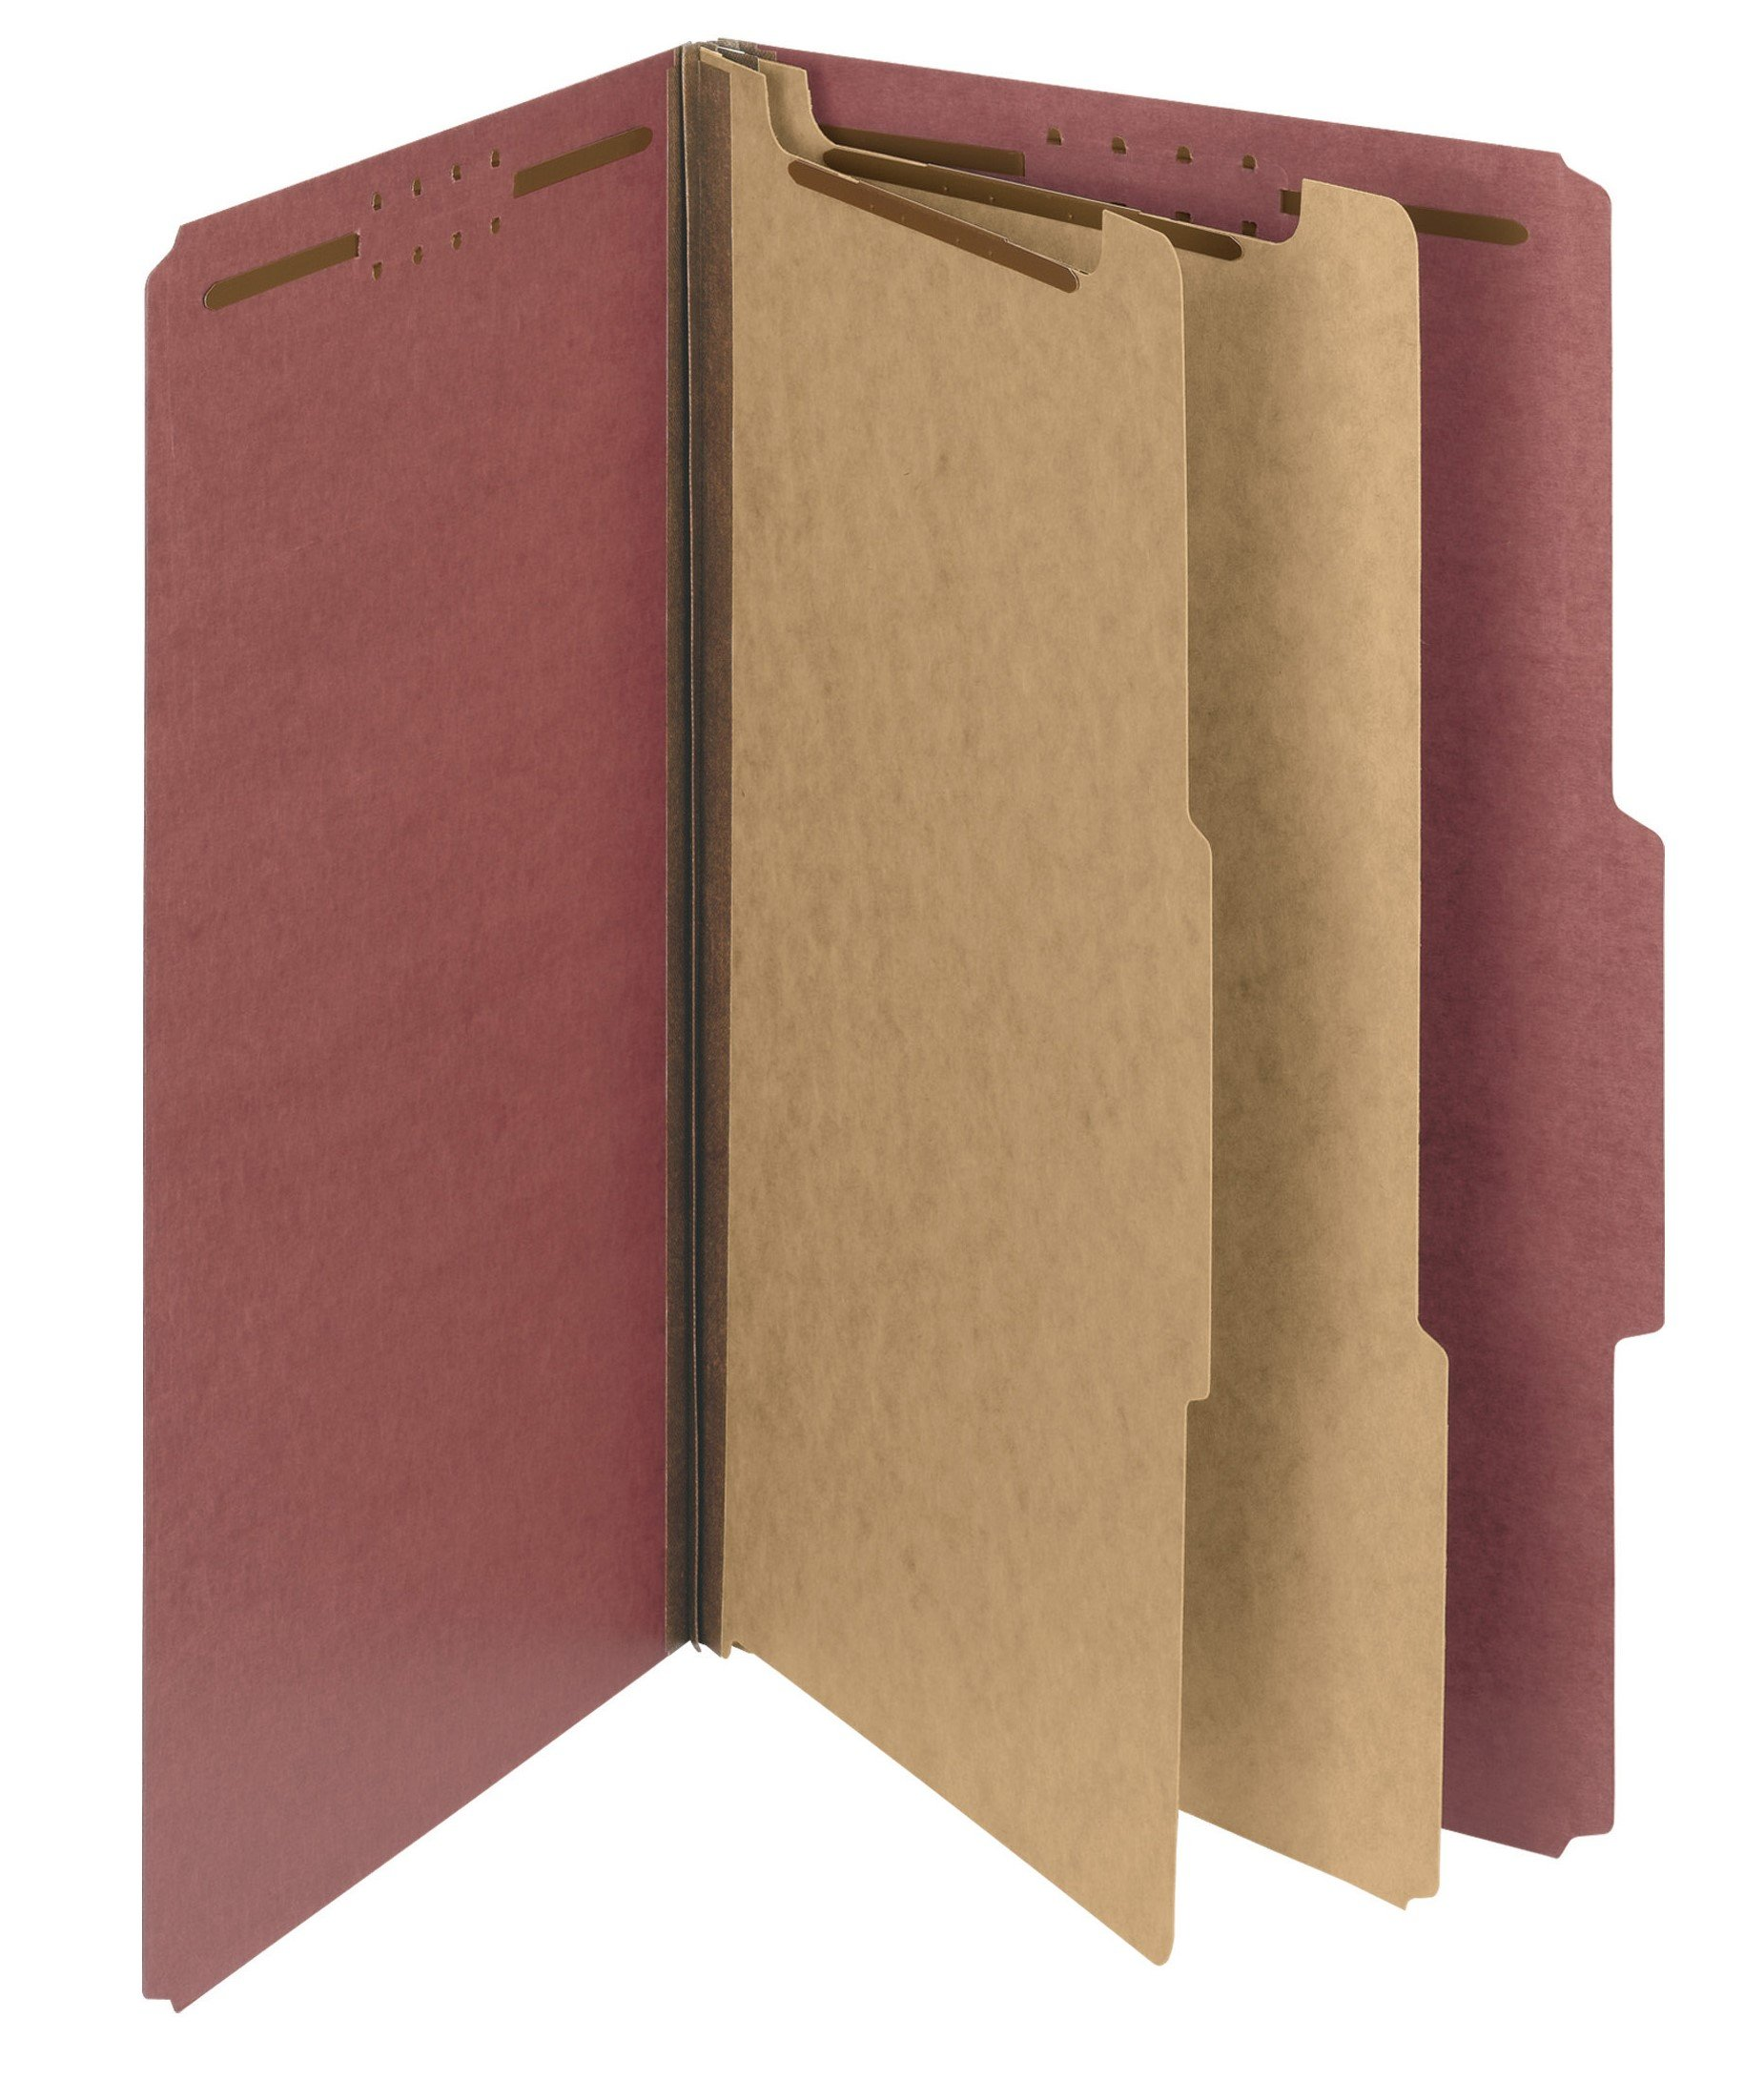 Smead 100% Recycled Pressboard Classification File Folder, 2 Dividers, 2'' Expansion, Legal Size, Red, 10 per Box (19023) by Smead